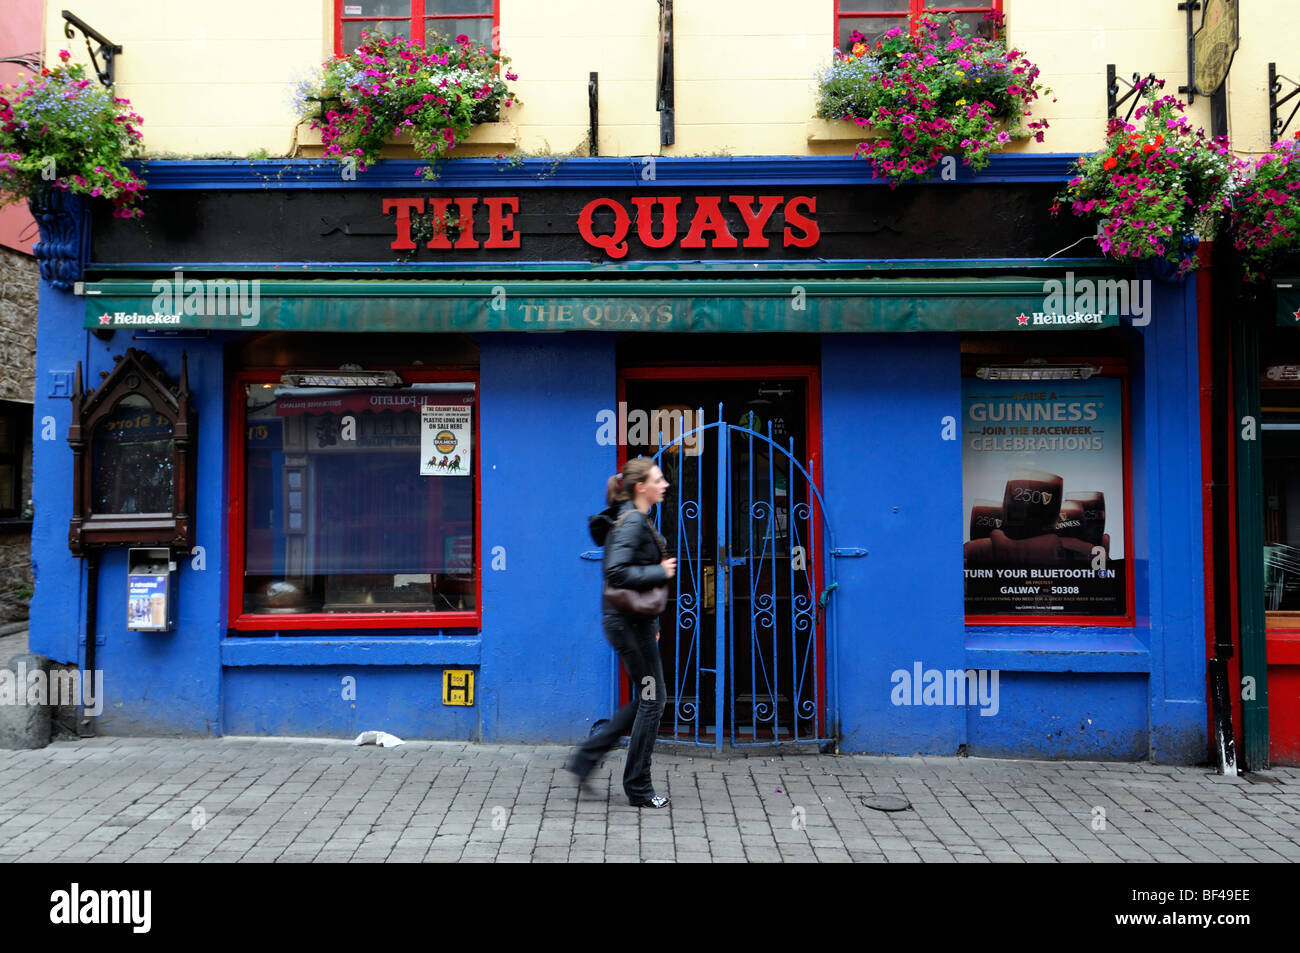 frontal front street frontage view the quays bar pub licensed premises galway ireland blue closed shut not open - Stock Image